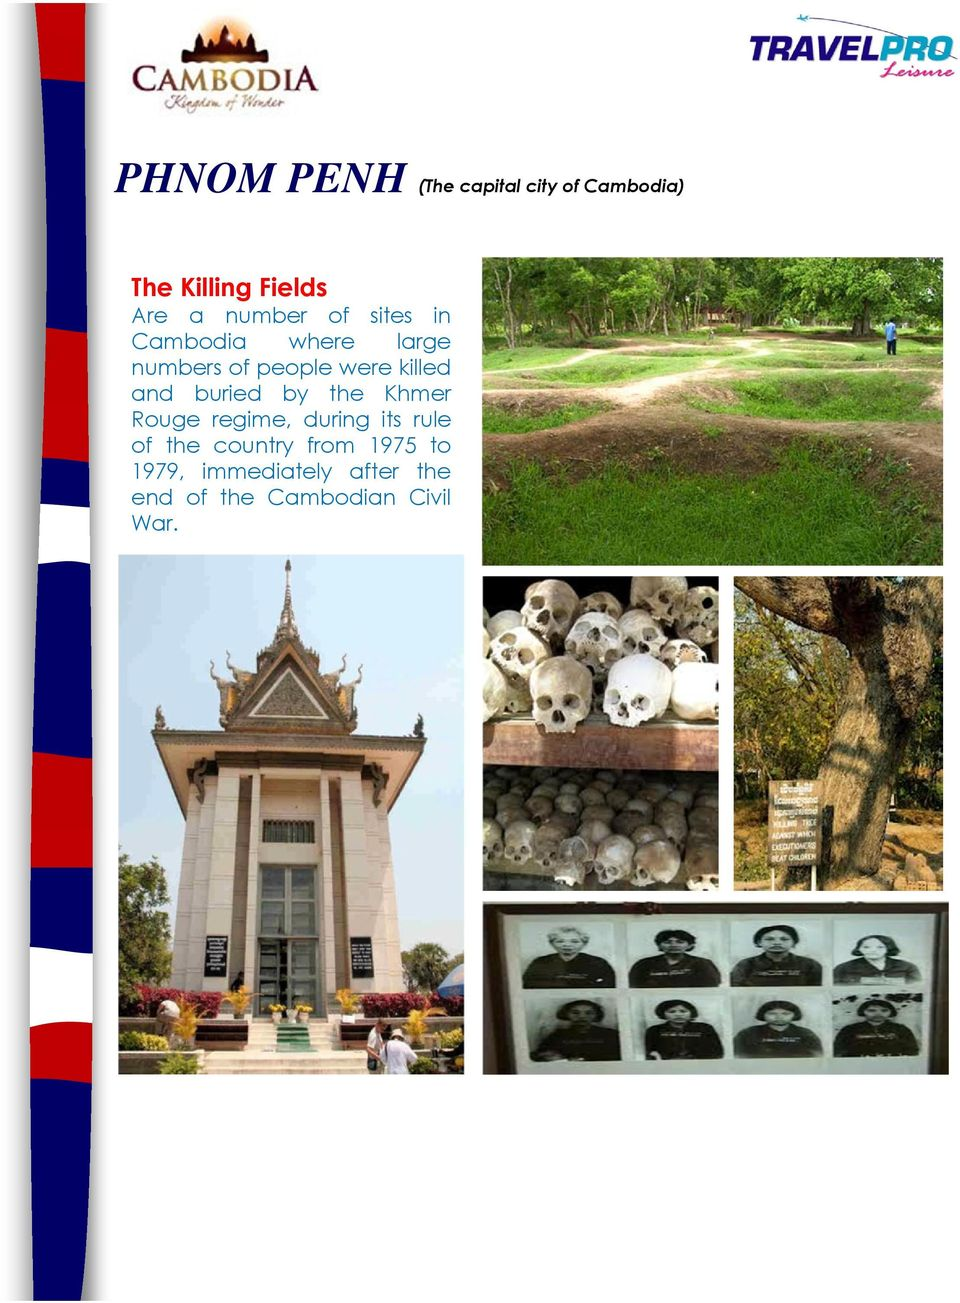 and buried by the Khmer Rouge regime, during its rule of the country